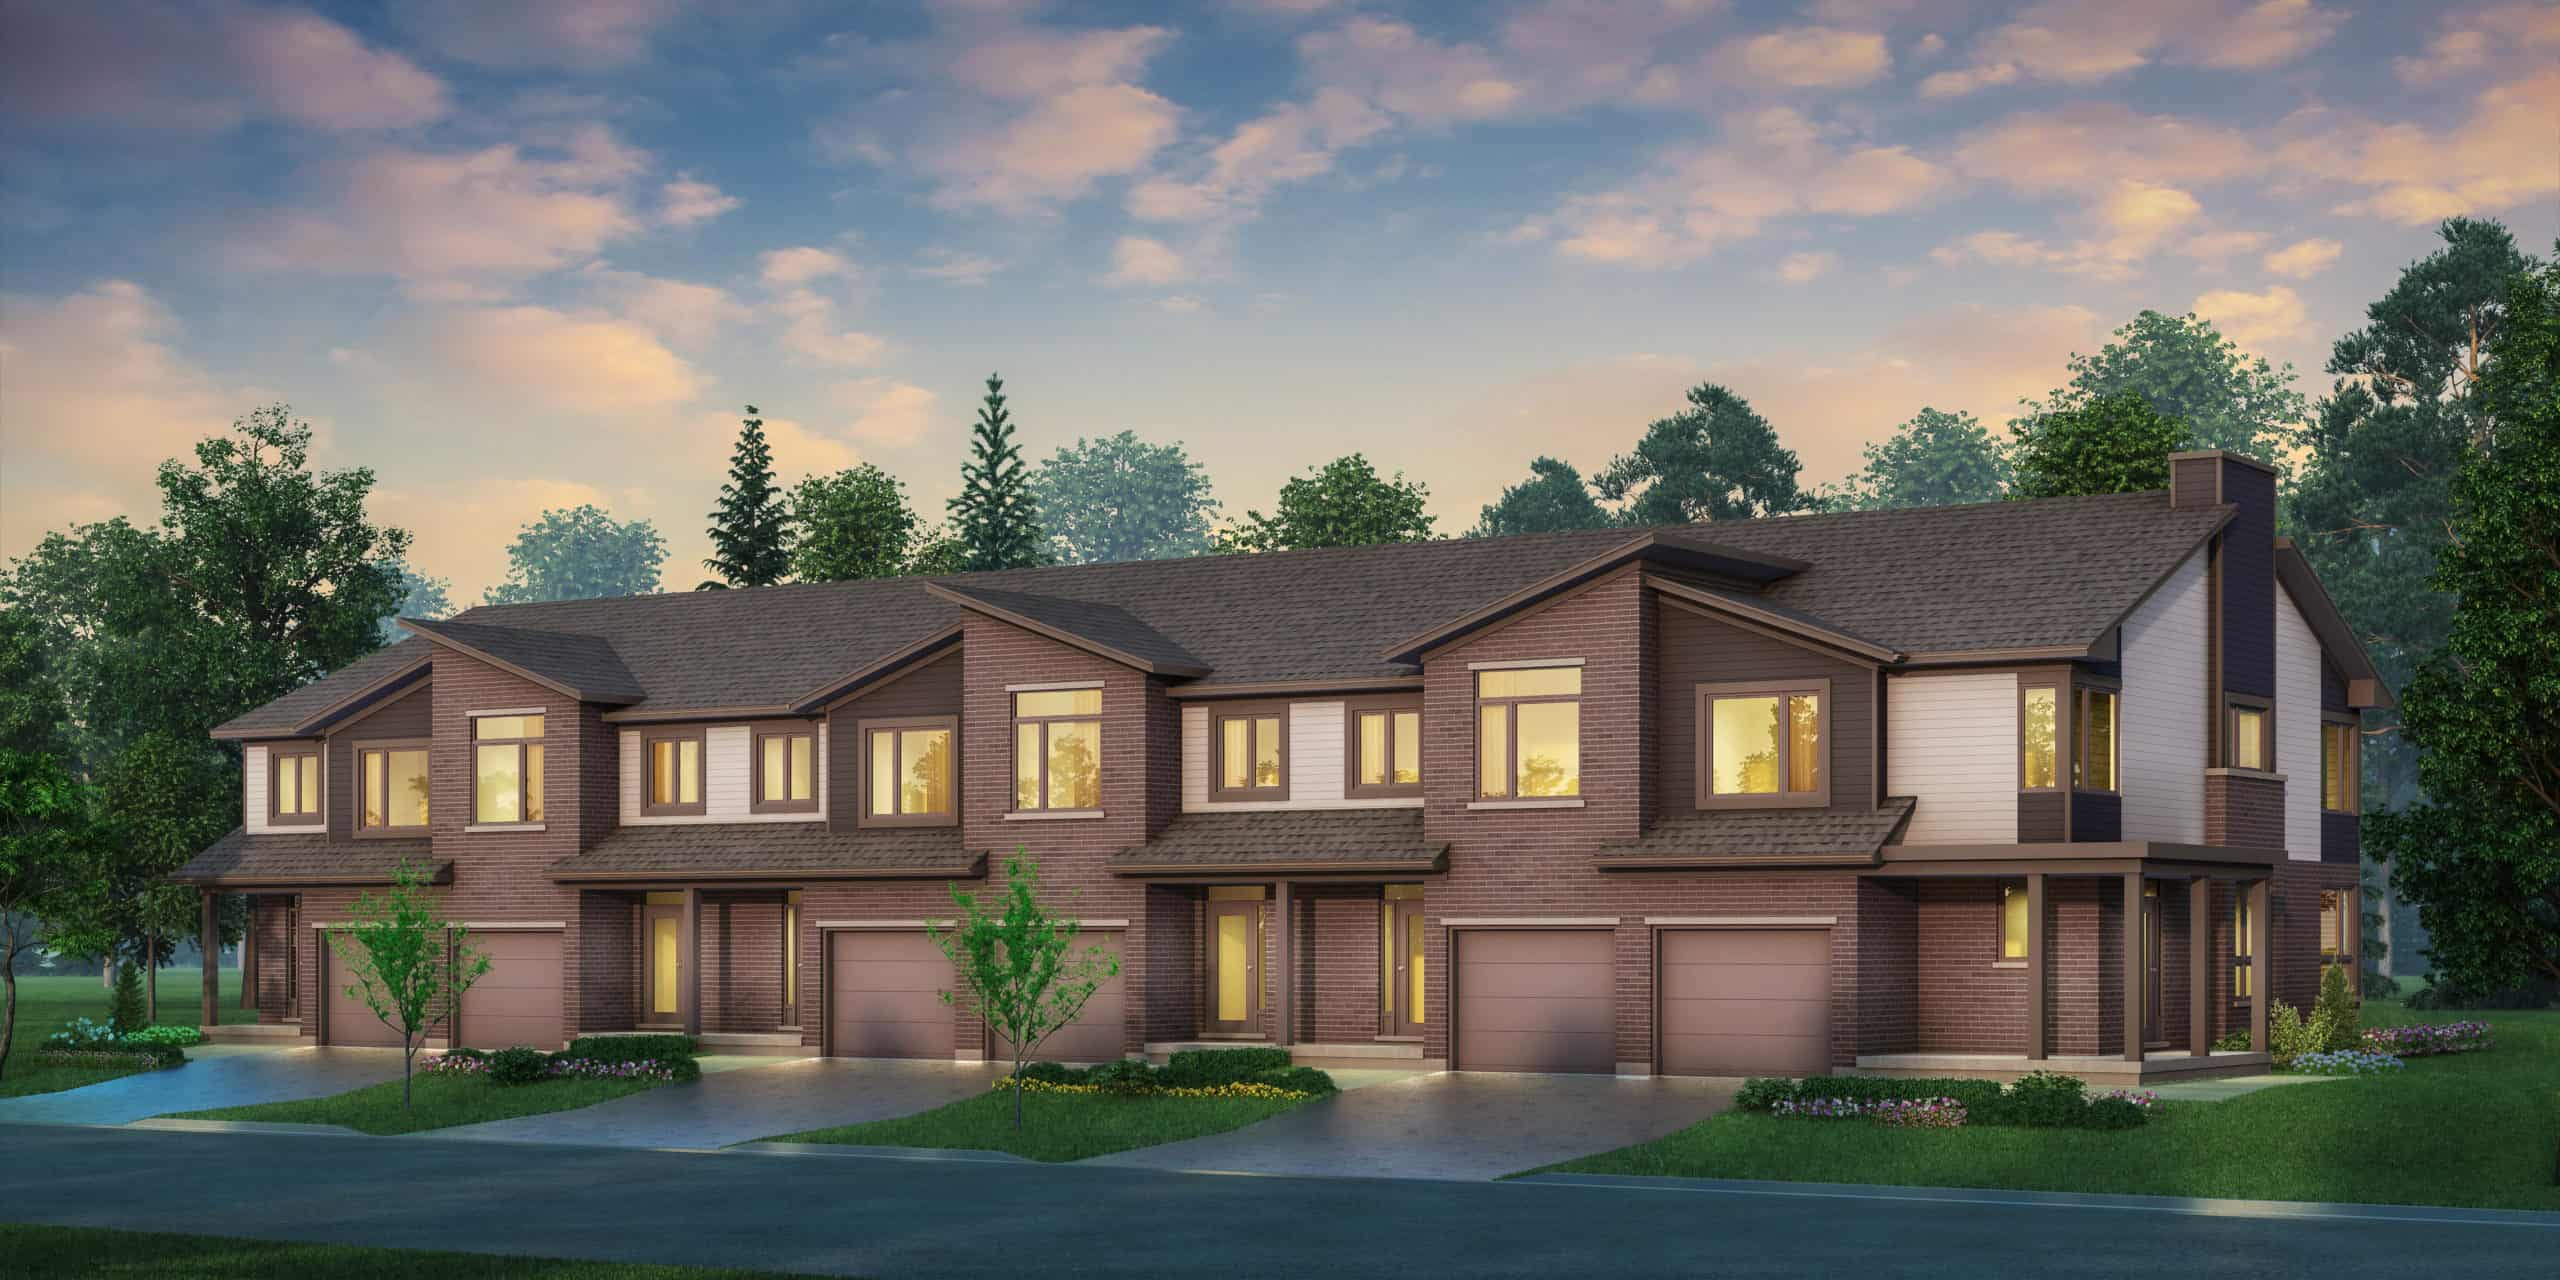 Pure-Model-Home-Exterior-Rendering